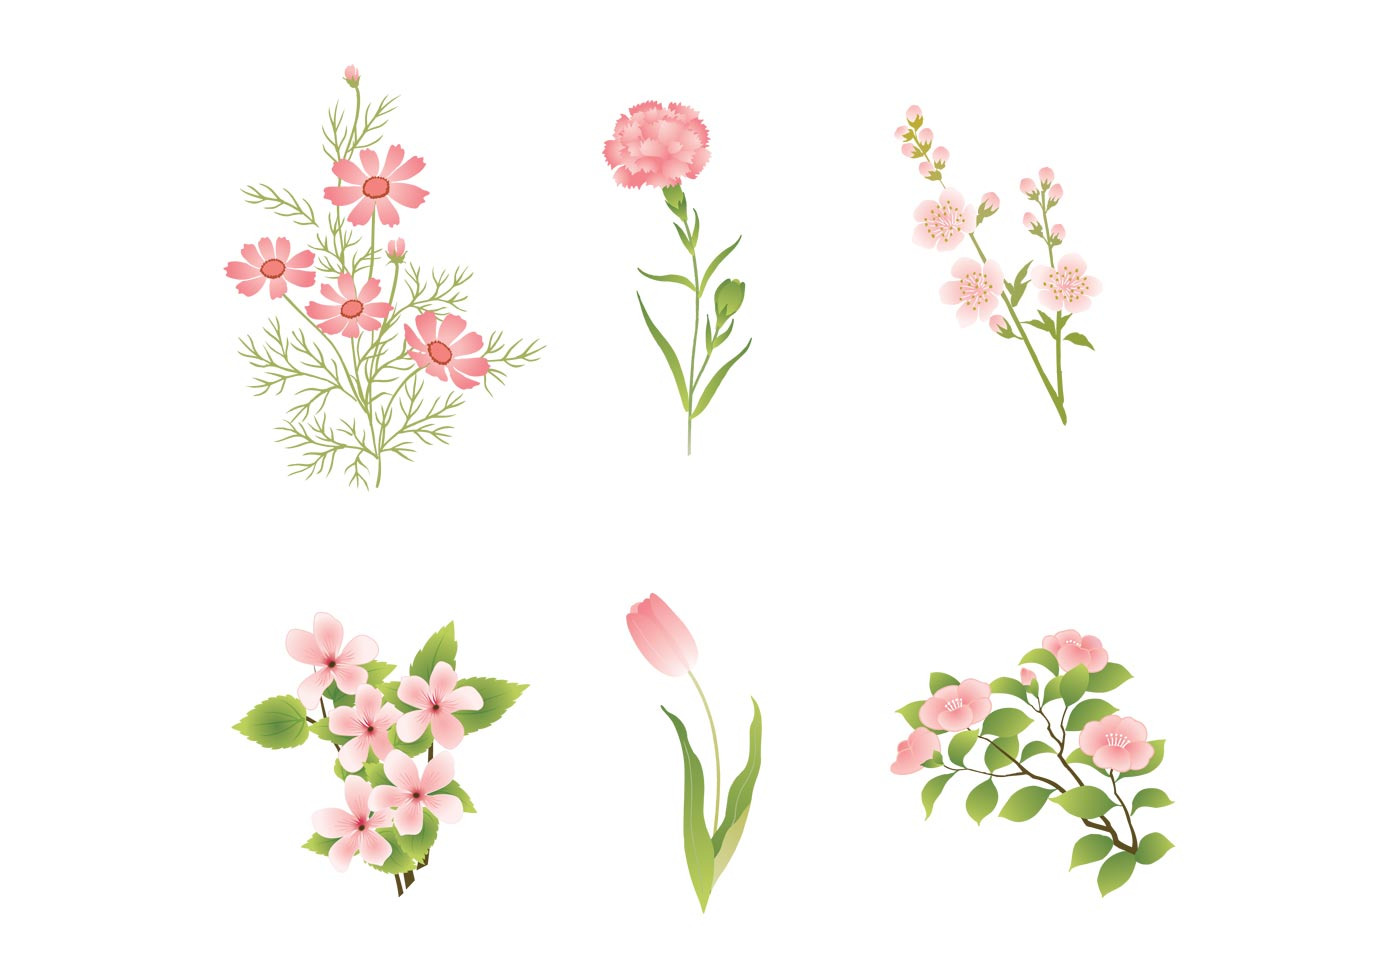 Pink flower vector clipart graphic library library Various Pink Flower Vectors - Download Free Vectors, Clipart ... graphic library library